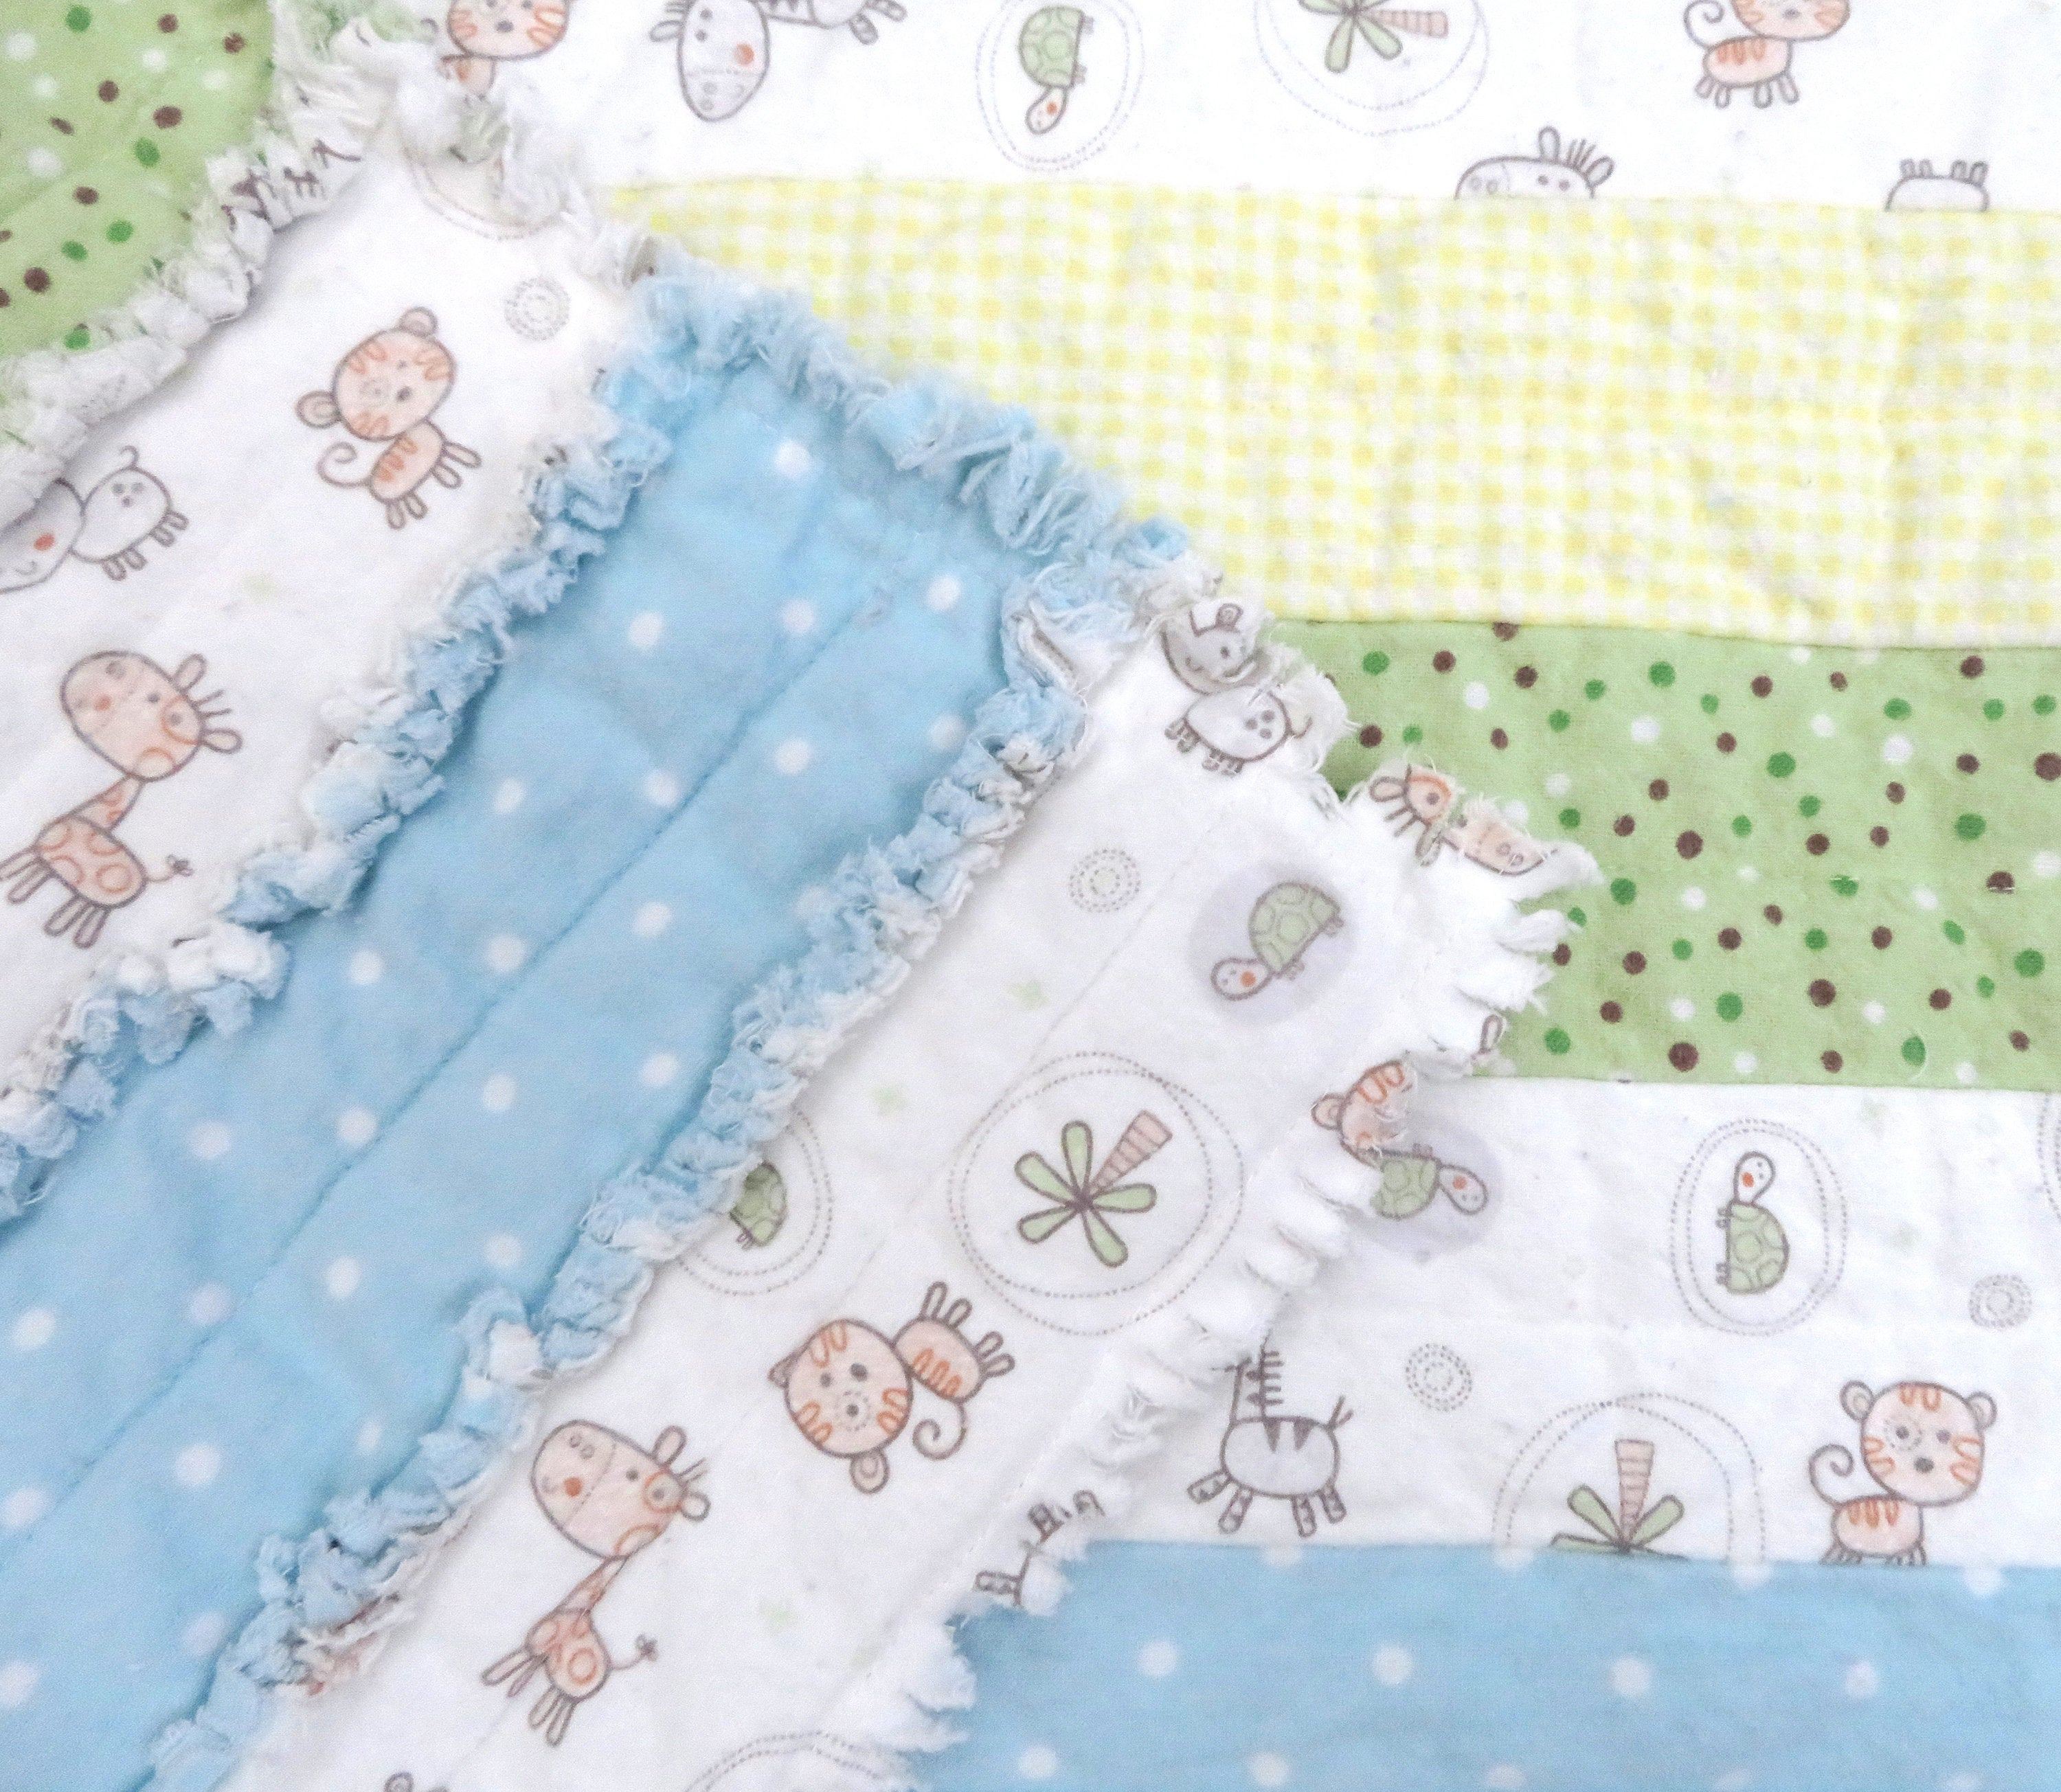 Baby Animal Jelly Roll Rag Quilt - soft pastels, baby boy nursery blanket, blue green yellow, zoo animal, zebra lion giraffe rhino